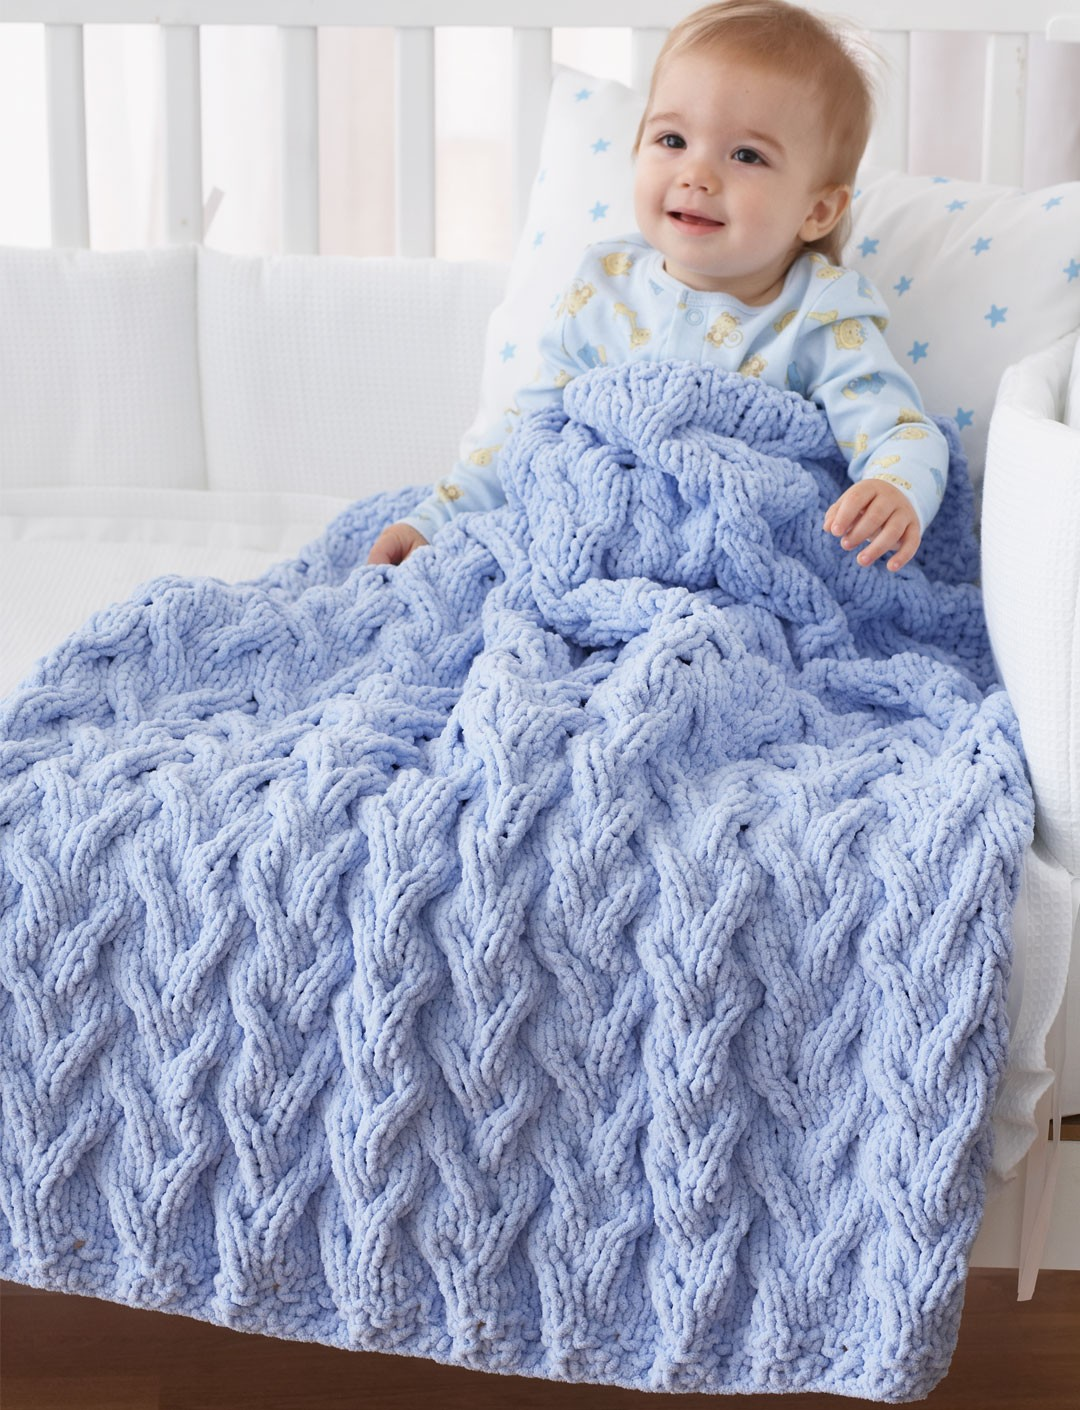 Bernat Knitting Patterns Free : Bernat Shadow Cable Baby Blanket, Knit Pattern Yarnspirations